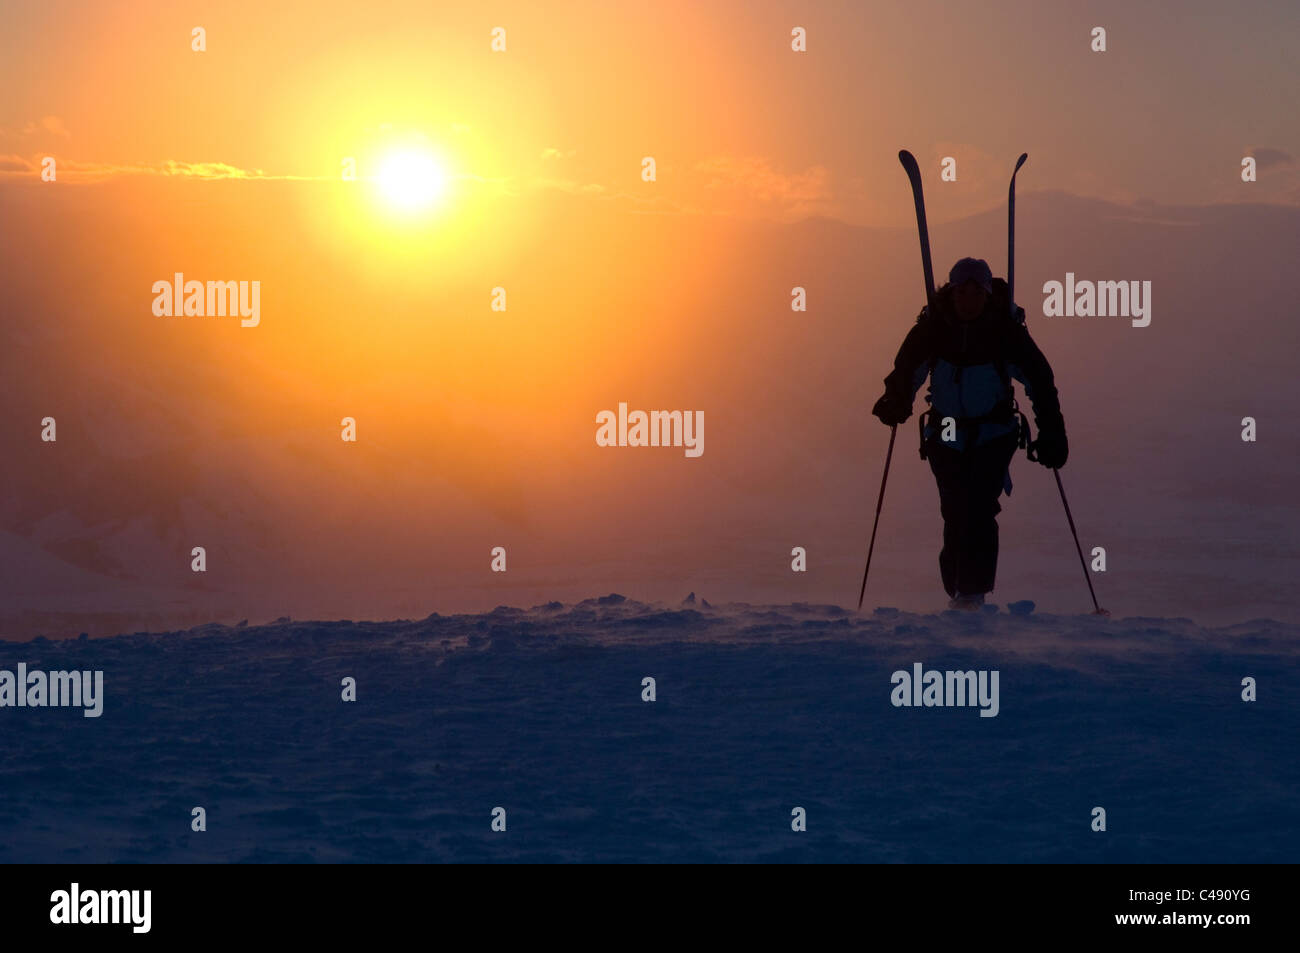 A woman hikes up a mountain with skis on her back at sunrise near Jackson, Wyoming. - Stock Image